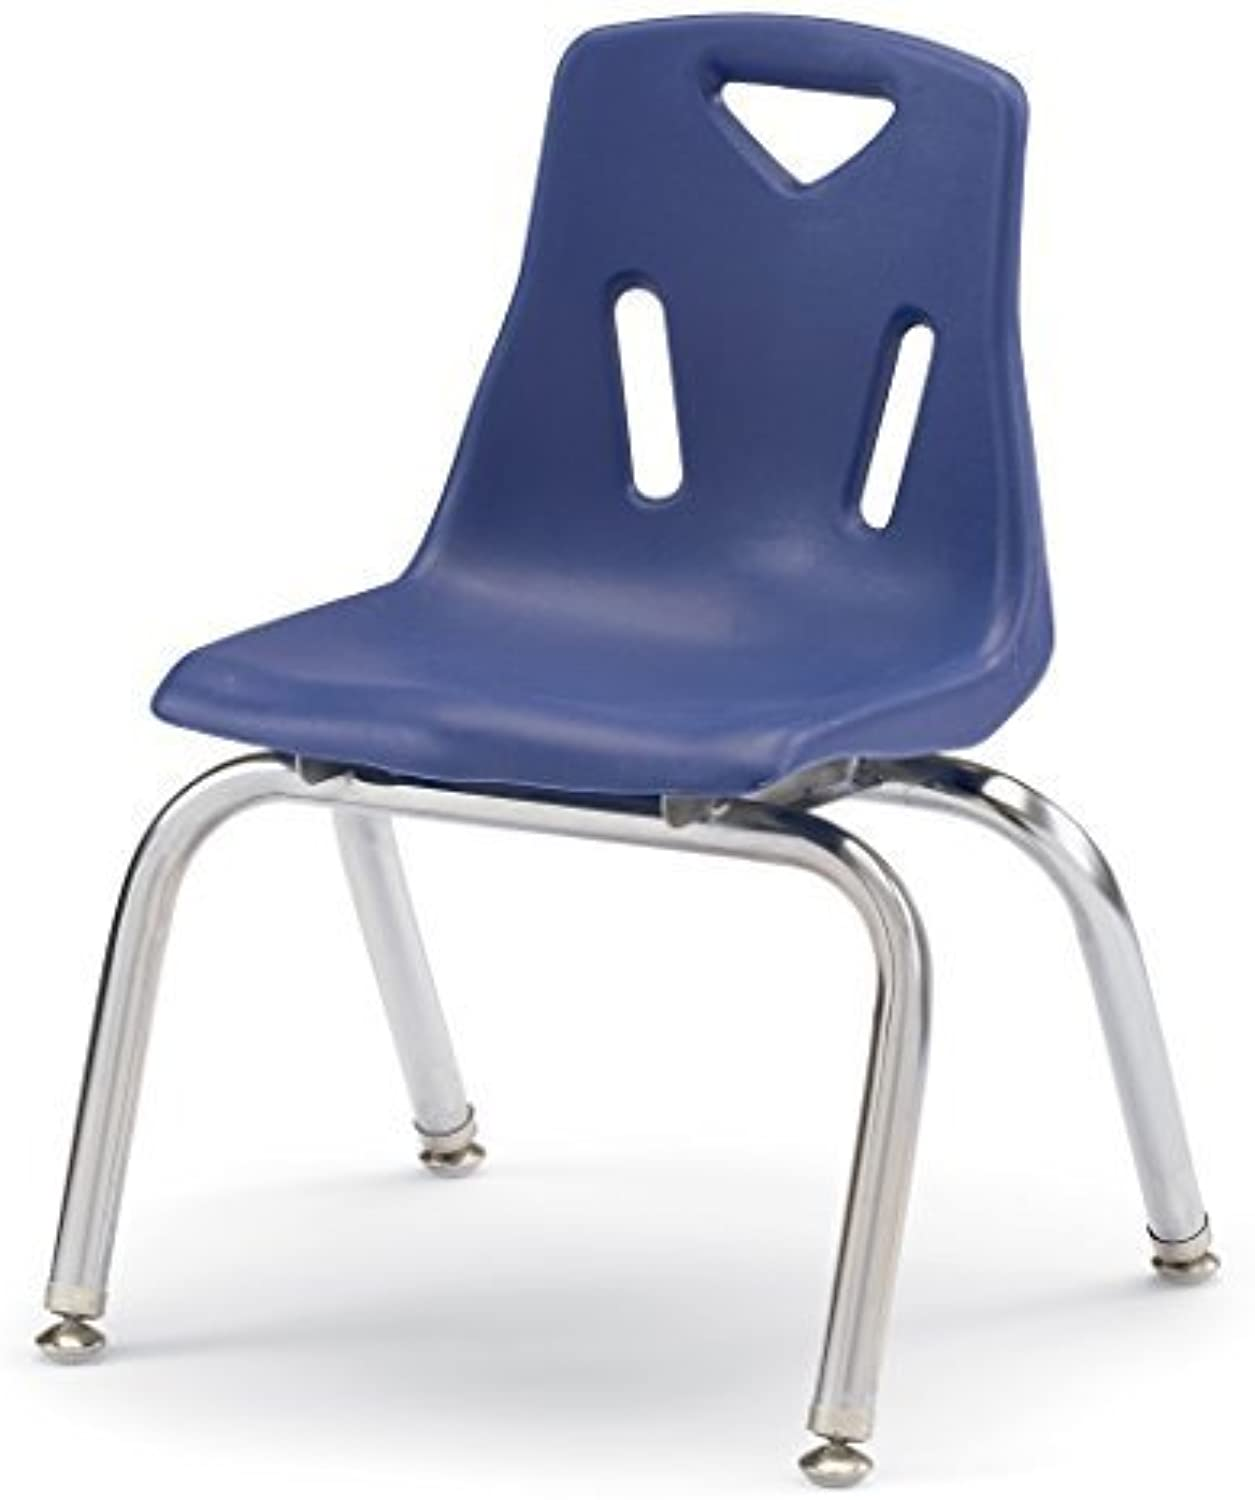 Berries Stacking Chair with Chrome-Plated Legs - 14 Ht - bleu by Berries